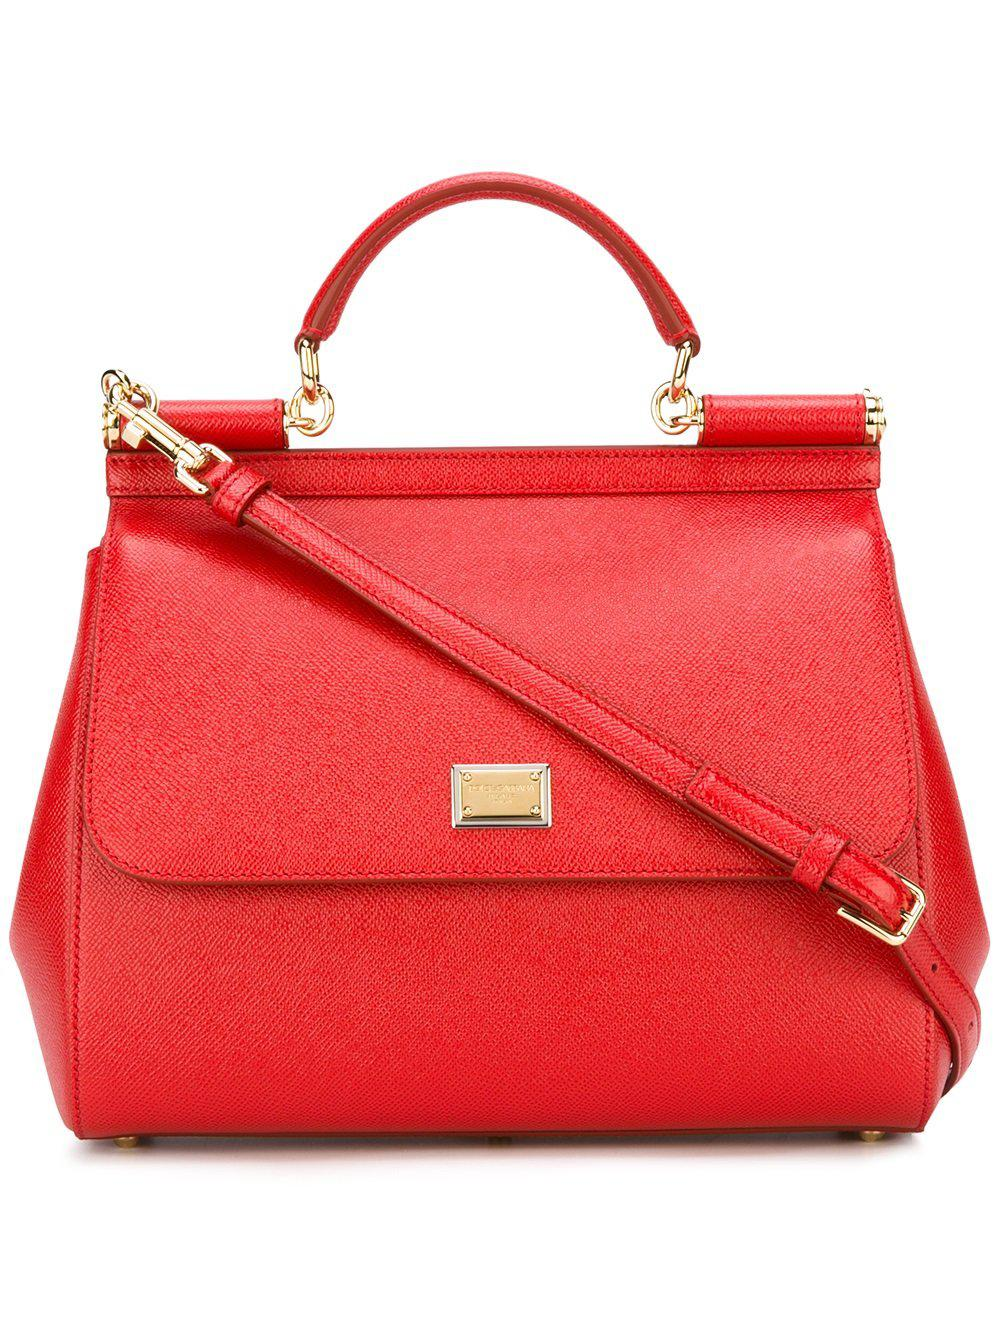 Lyst - Dolce   Gabbana Sicily Dauphine Leather Bag in Red ccc597c5af604